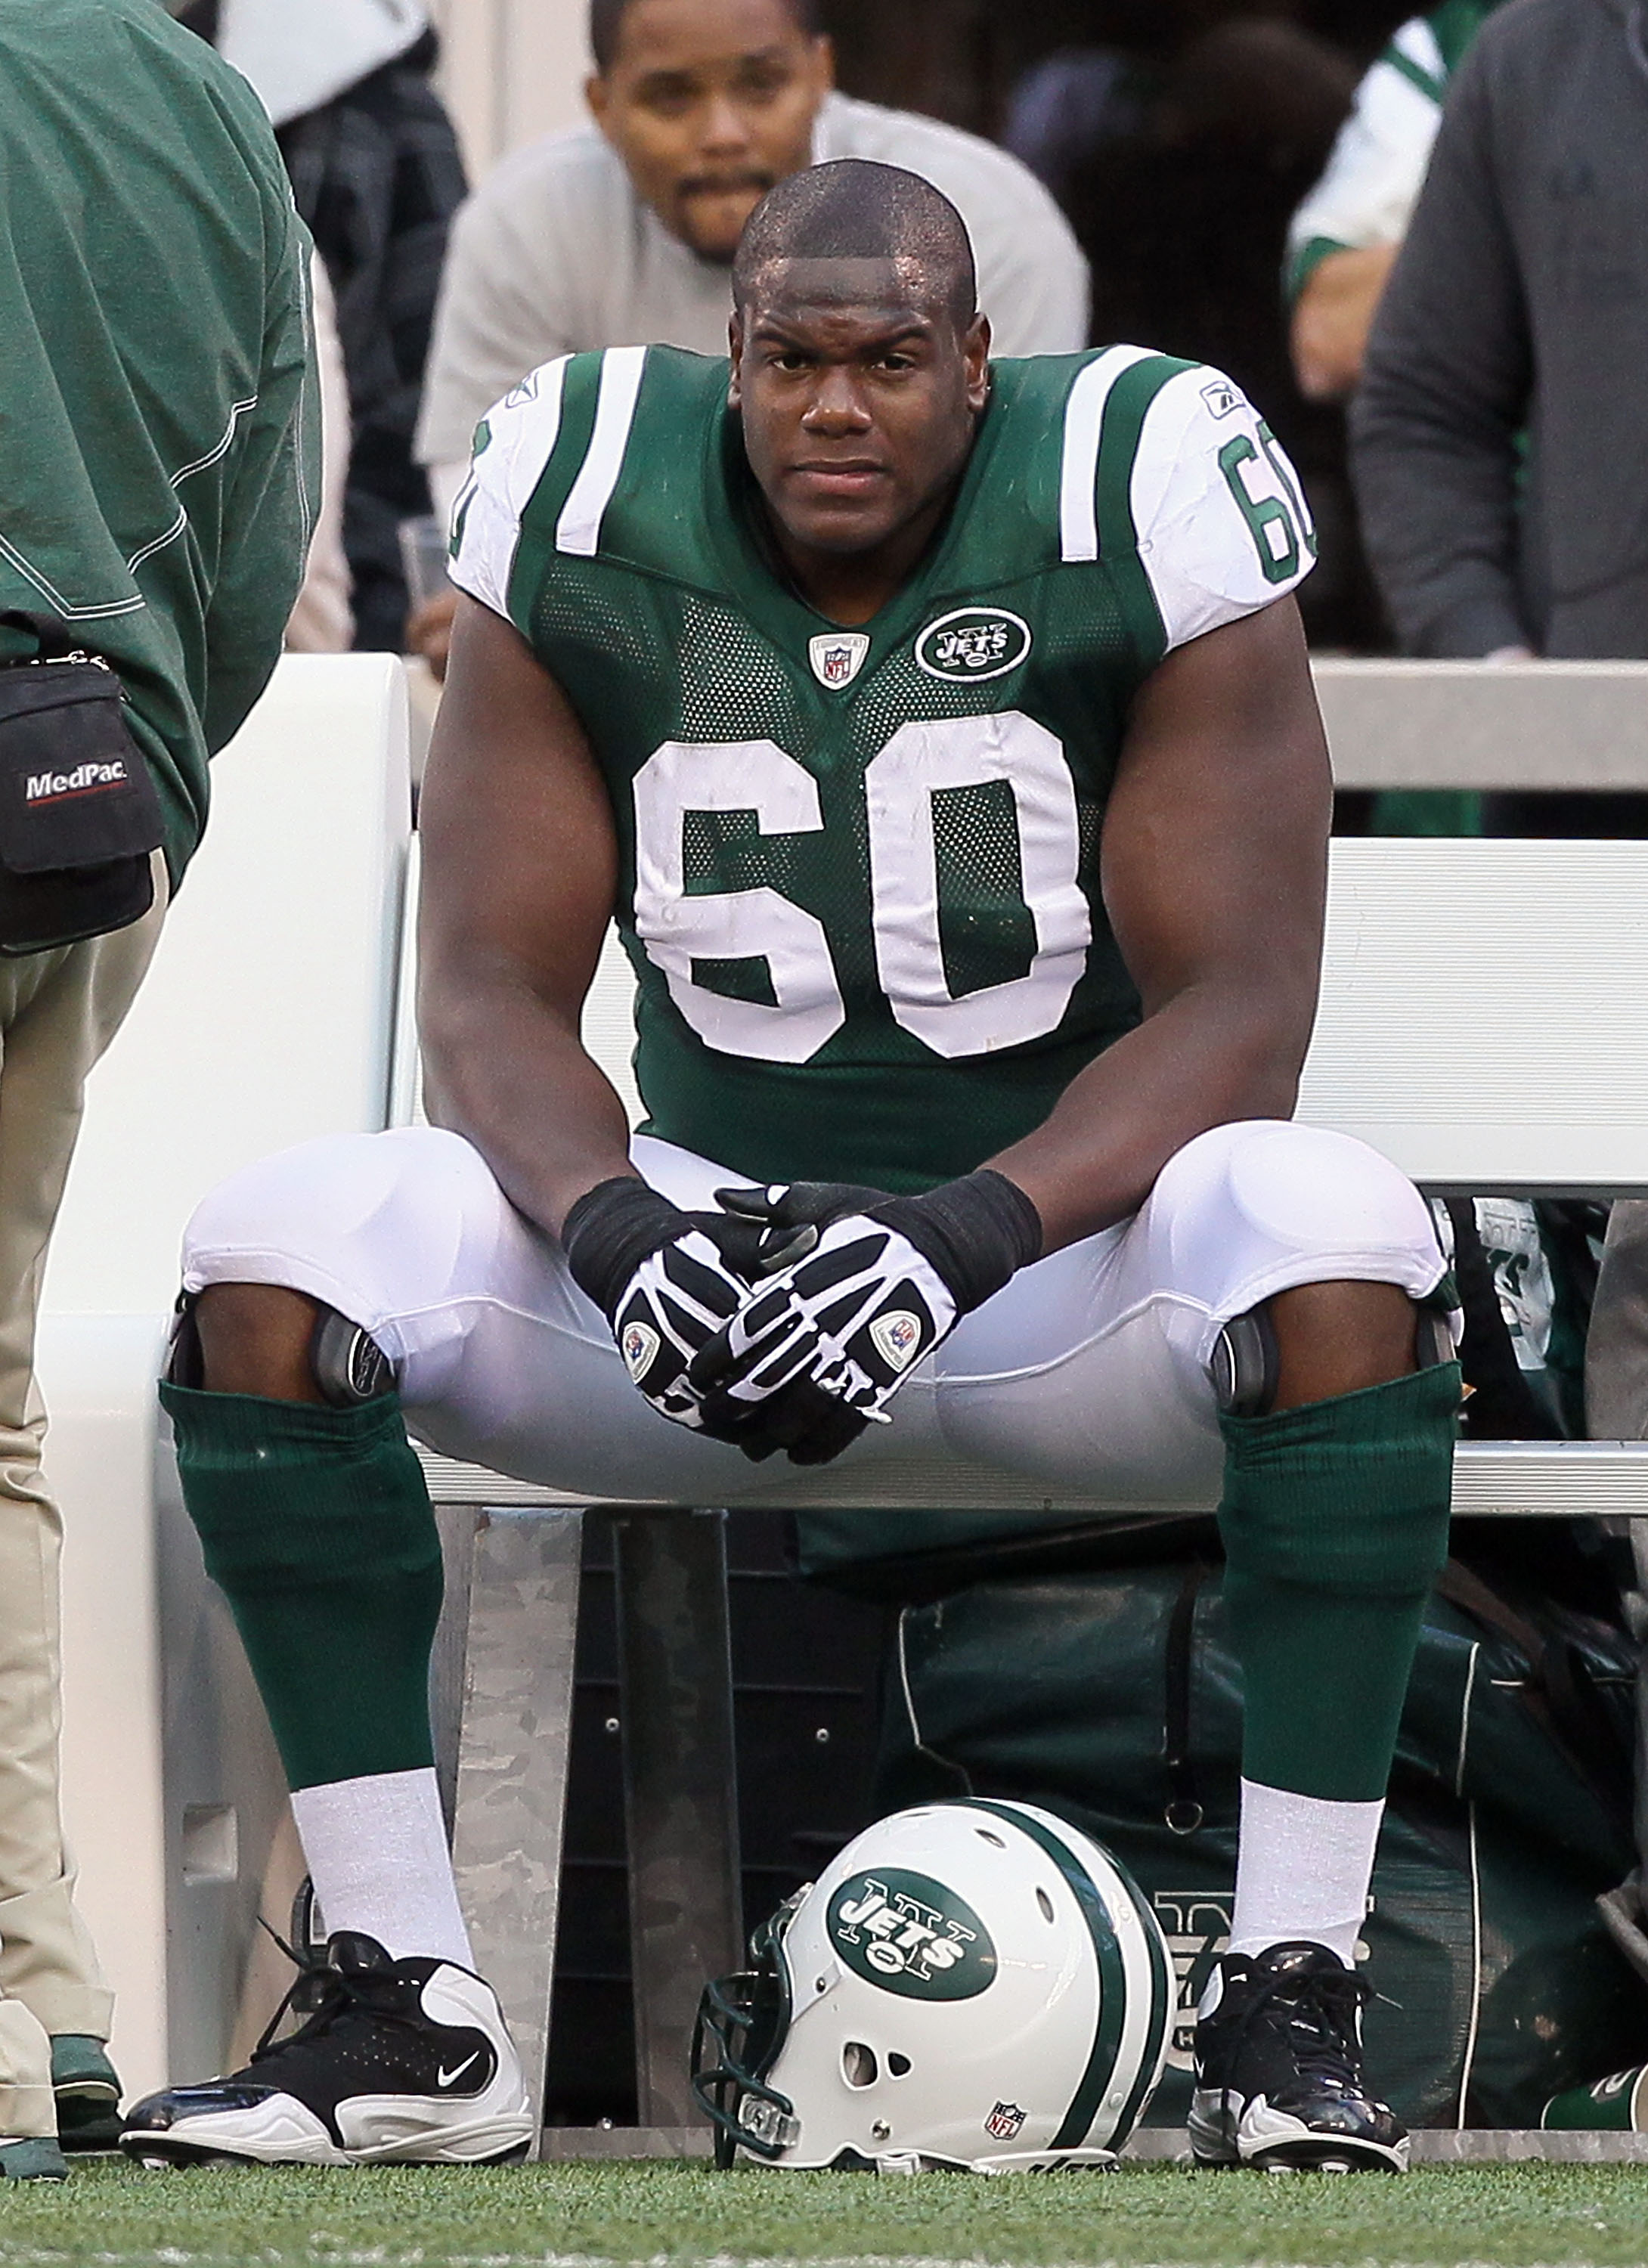 EAST RUTHERFORD, NJ - OCTOBER 31:  D'Brickashaw Ferguson #60 of the New York Jets looks on late in the game against the Green Bay Packers on October 31, 2010 at the New Meadowlands Stadium in East Rutherford, New Jersey. The Packers defeated the Jets 9-0.